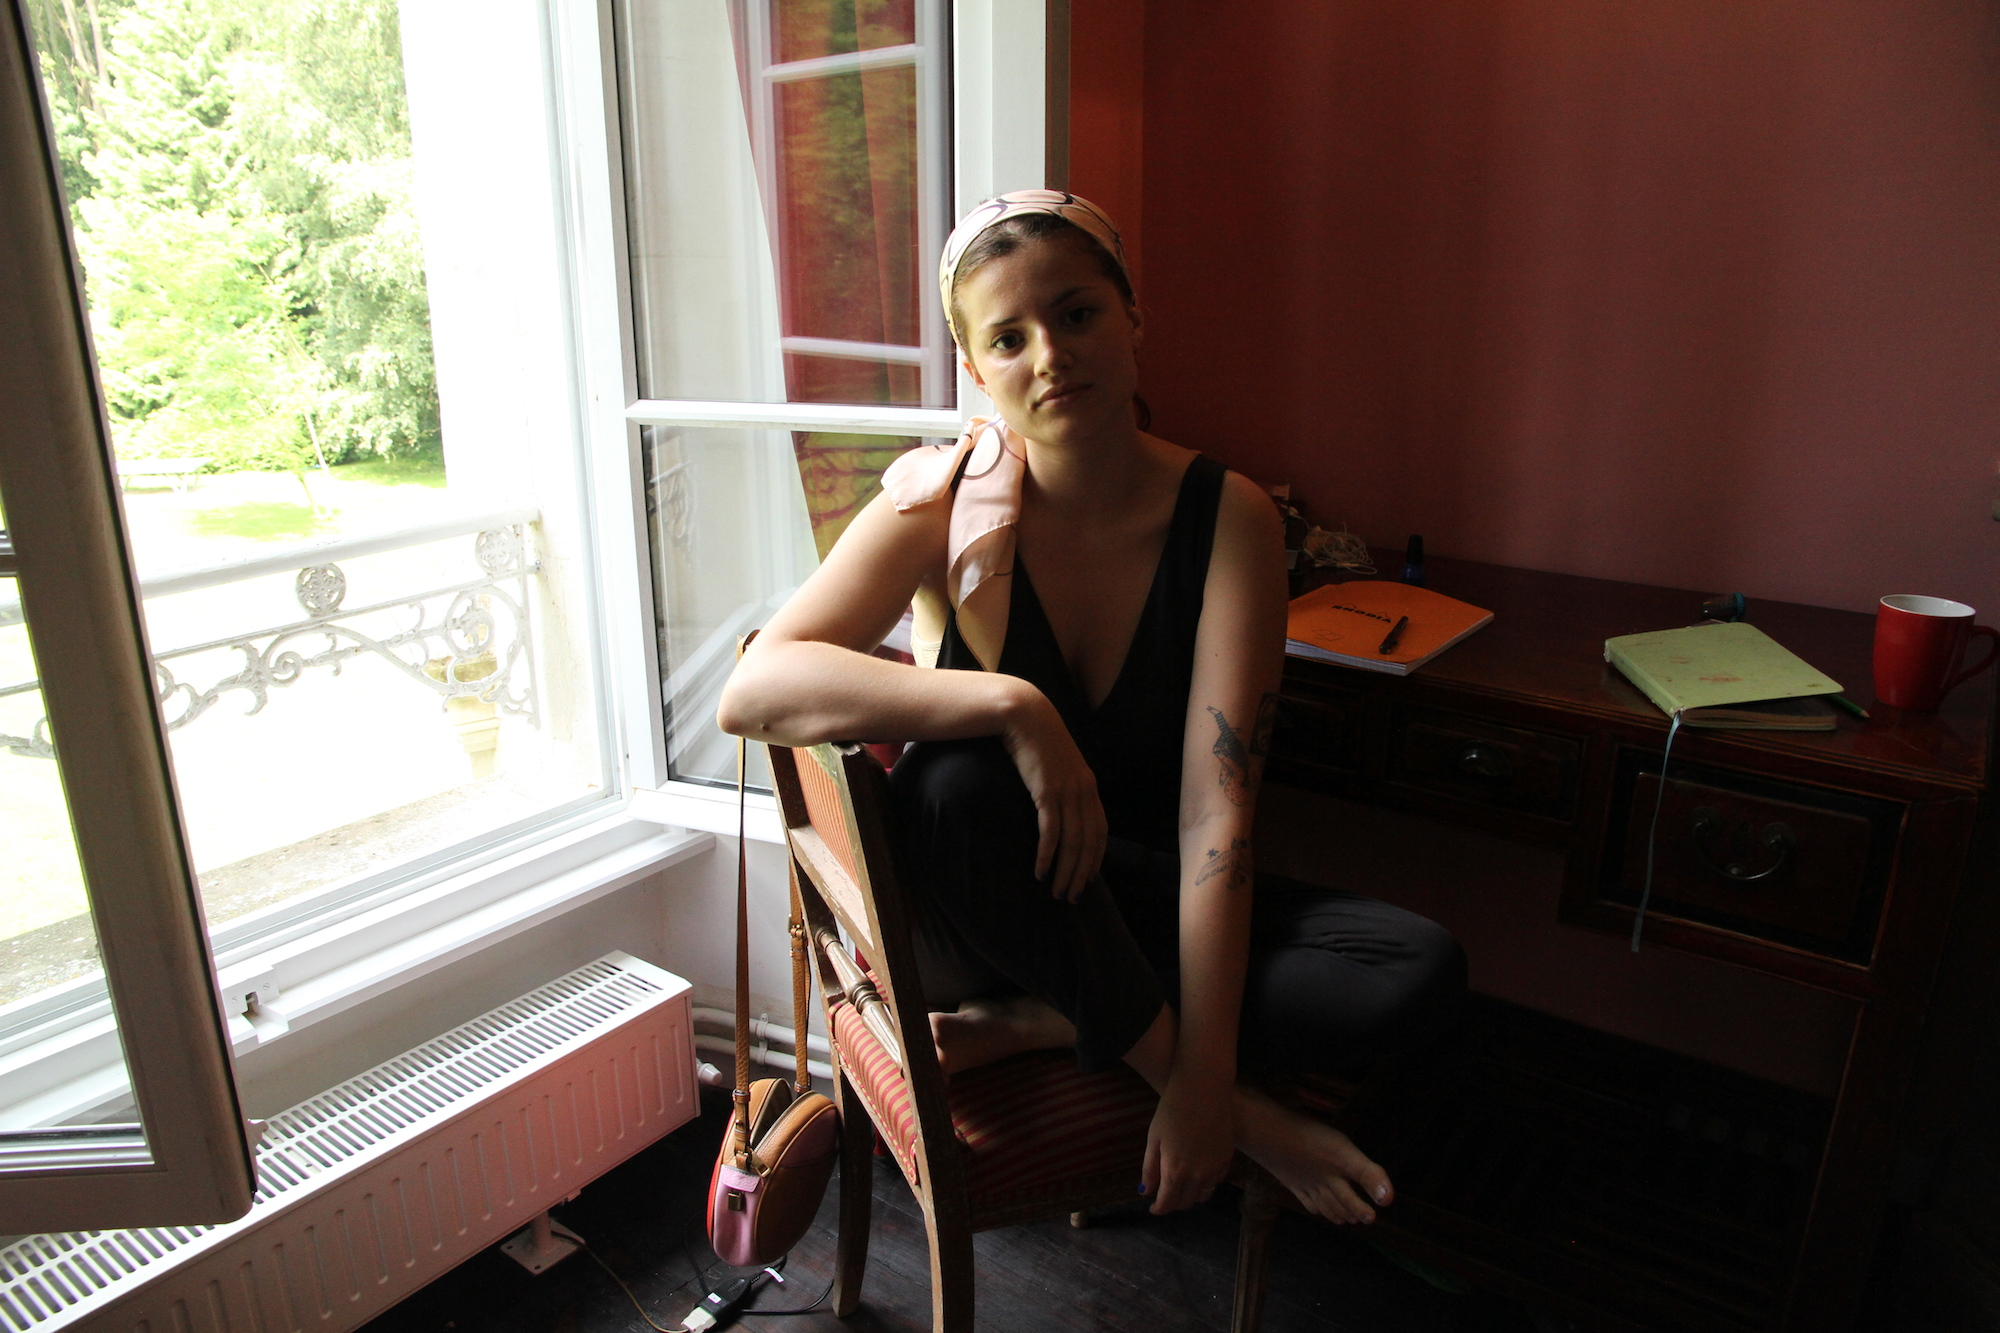 Kenly at her writing desk during the residency @ Centre Pompadour, June, 2018